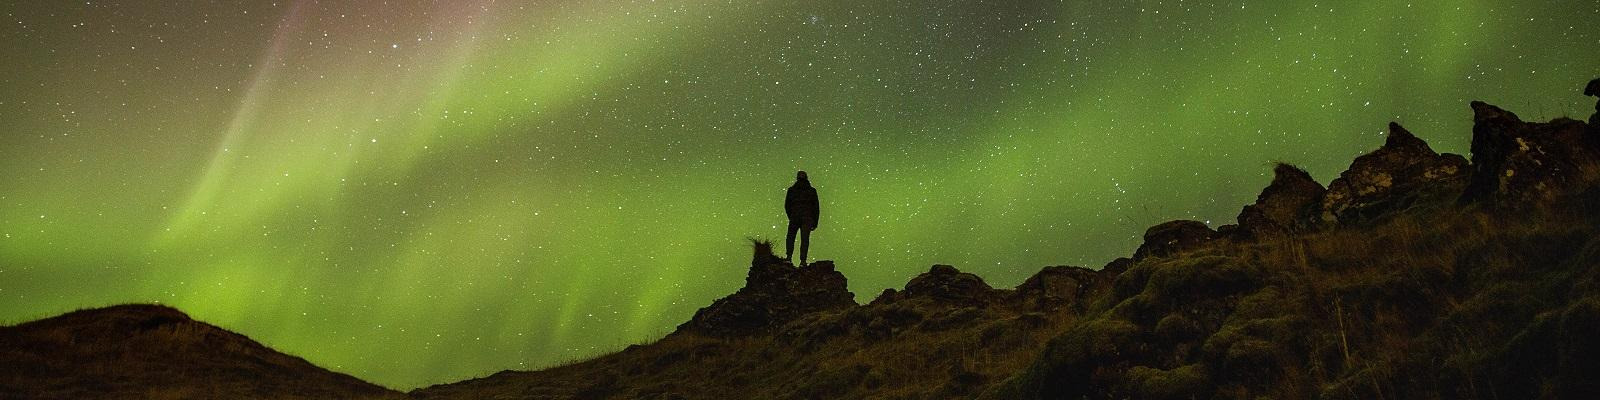 Figure silhouetted by the northern lights in Iceland